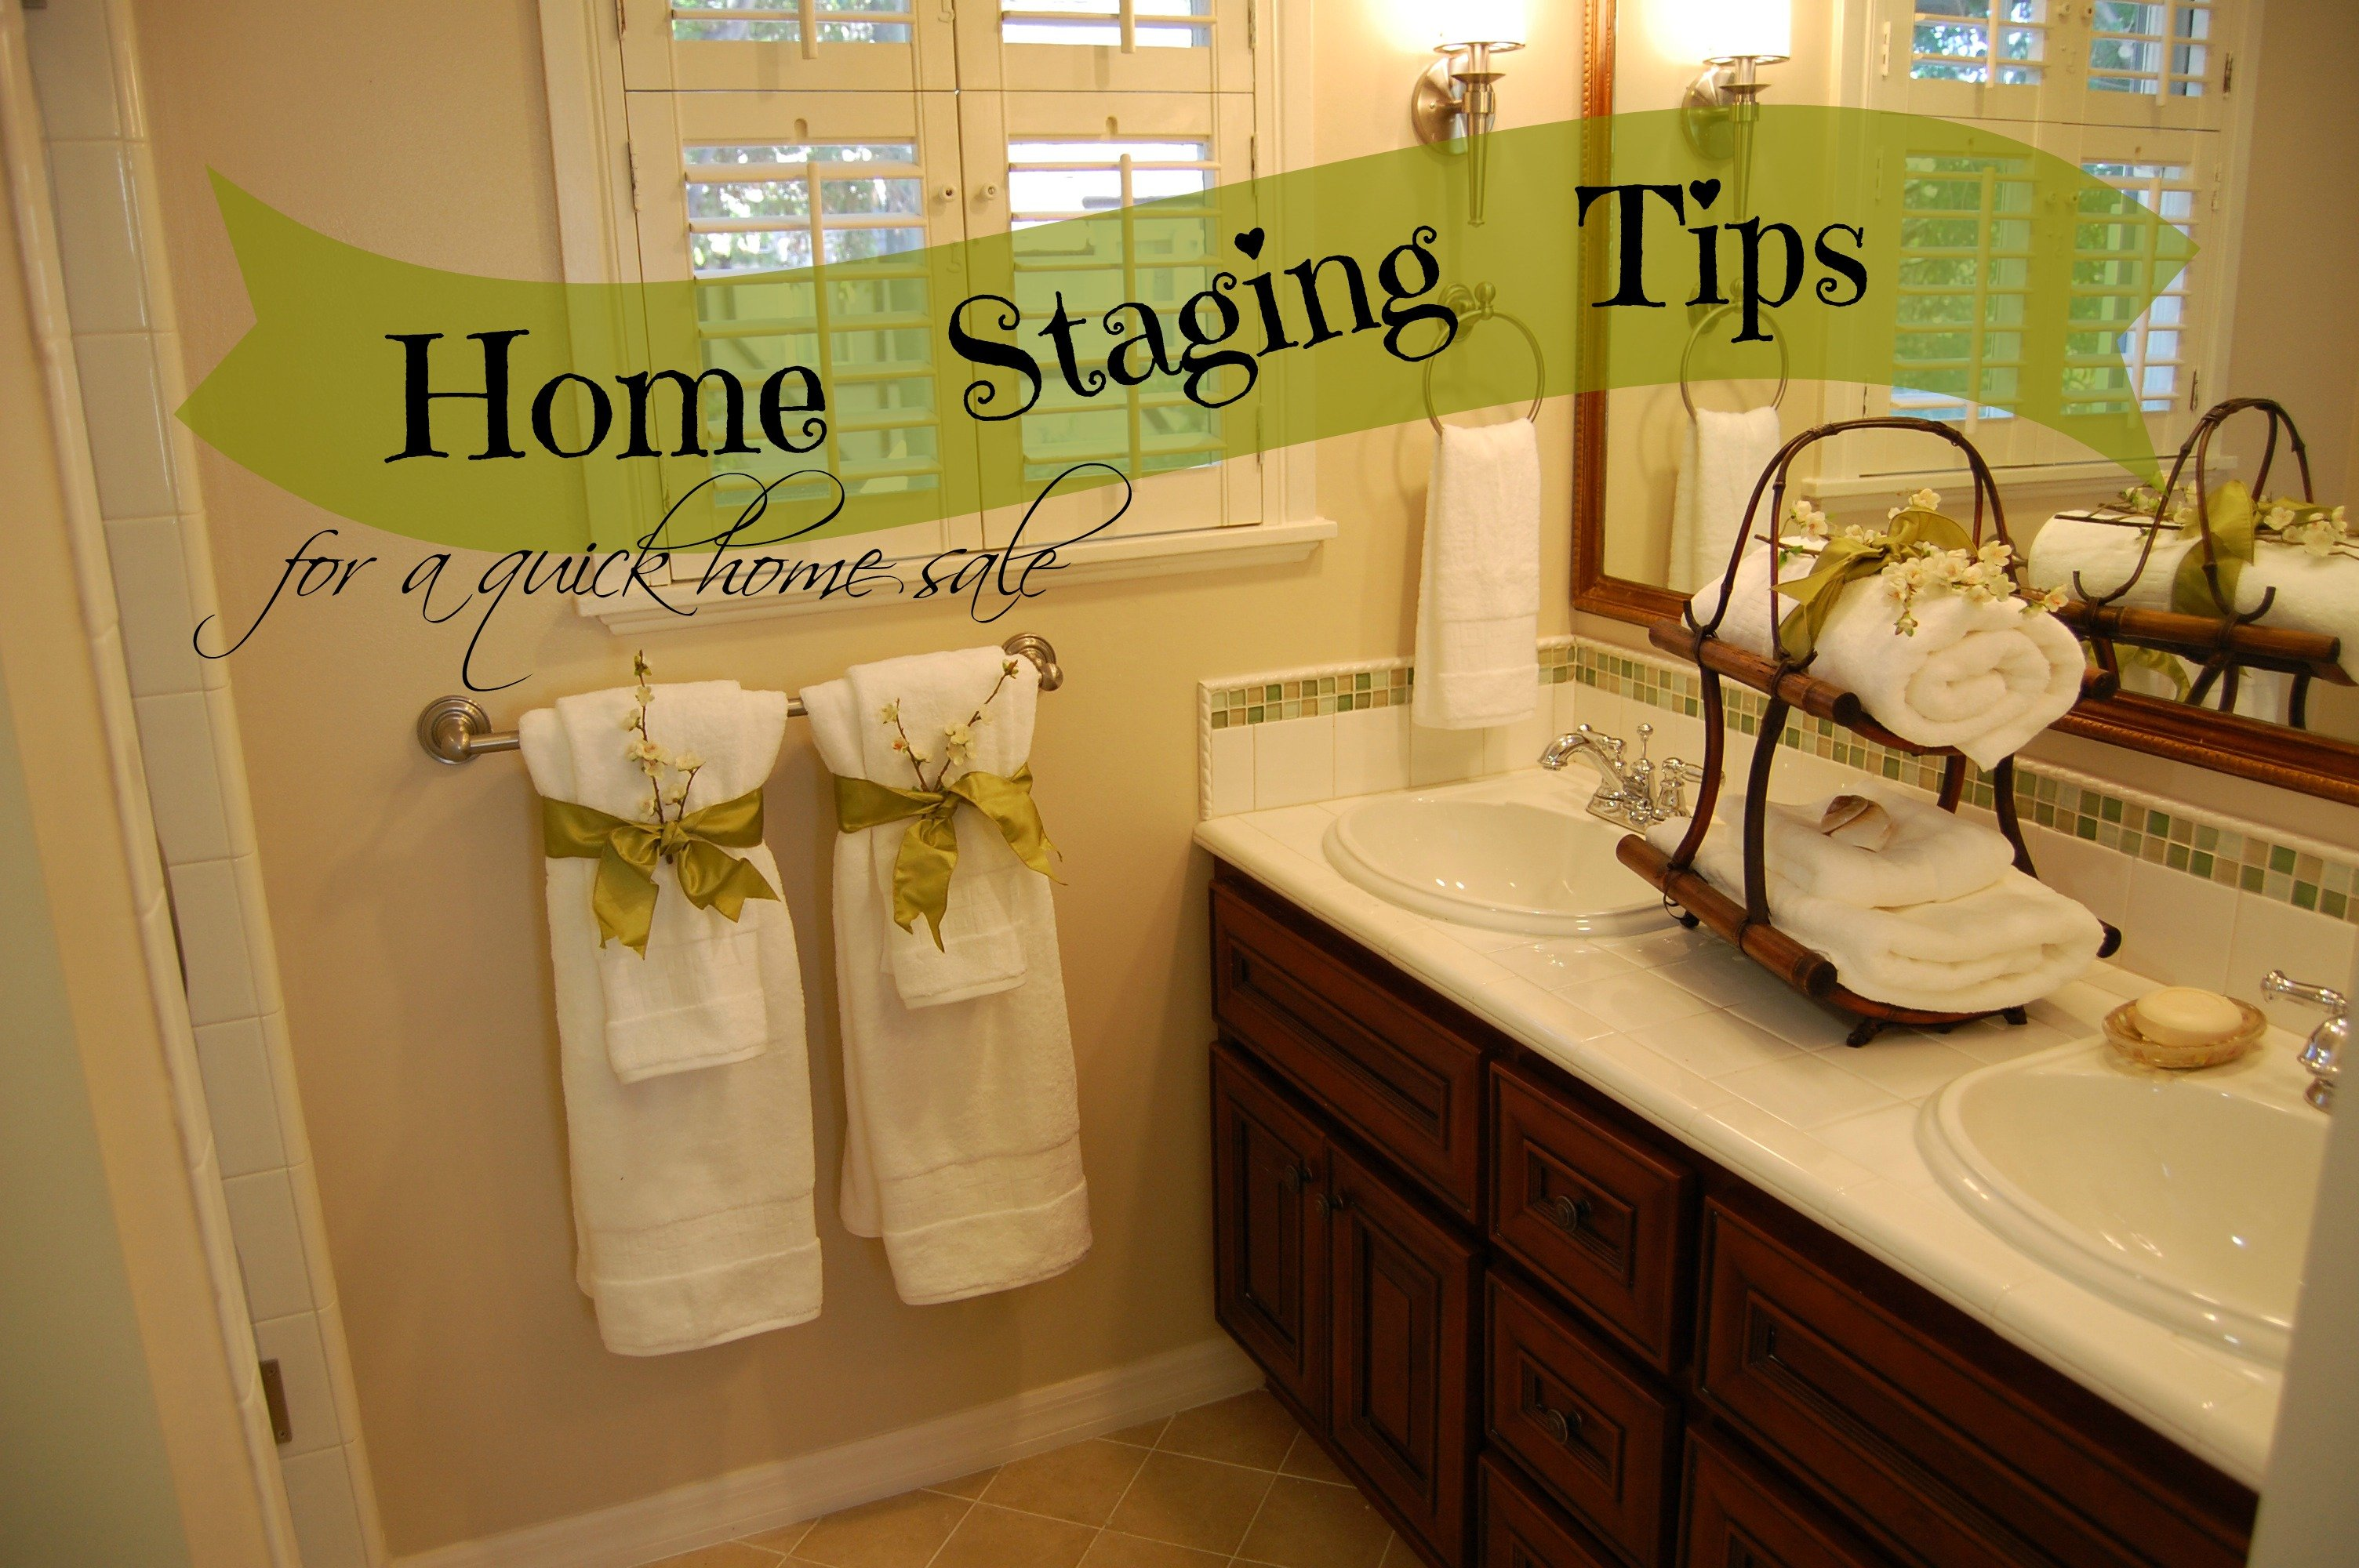 Home staging tips for a quick home sale colorado springs for Decorating house for sale